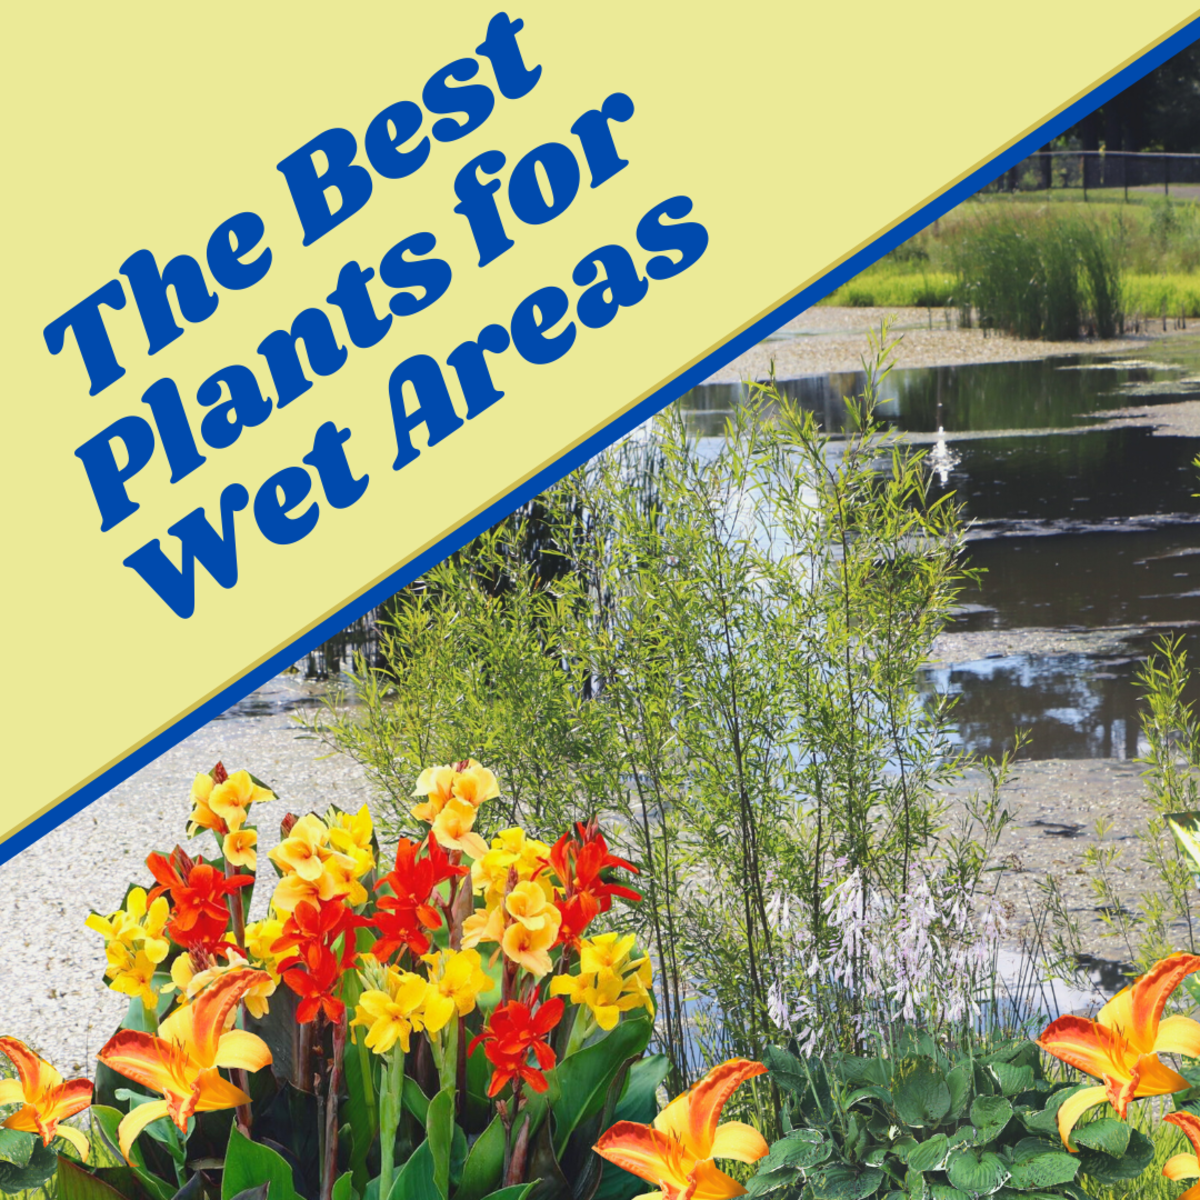 15 plant ideas for gardens with poor drainage and standing water.